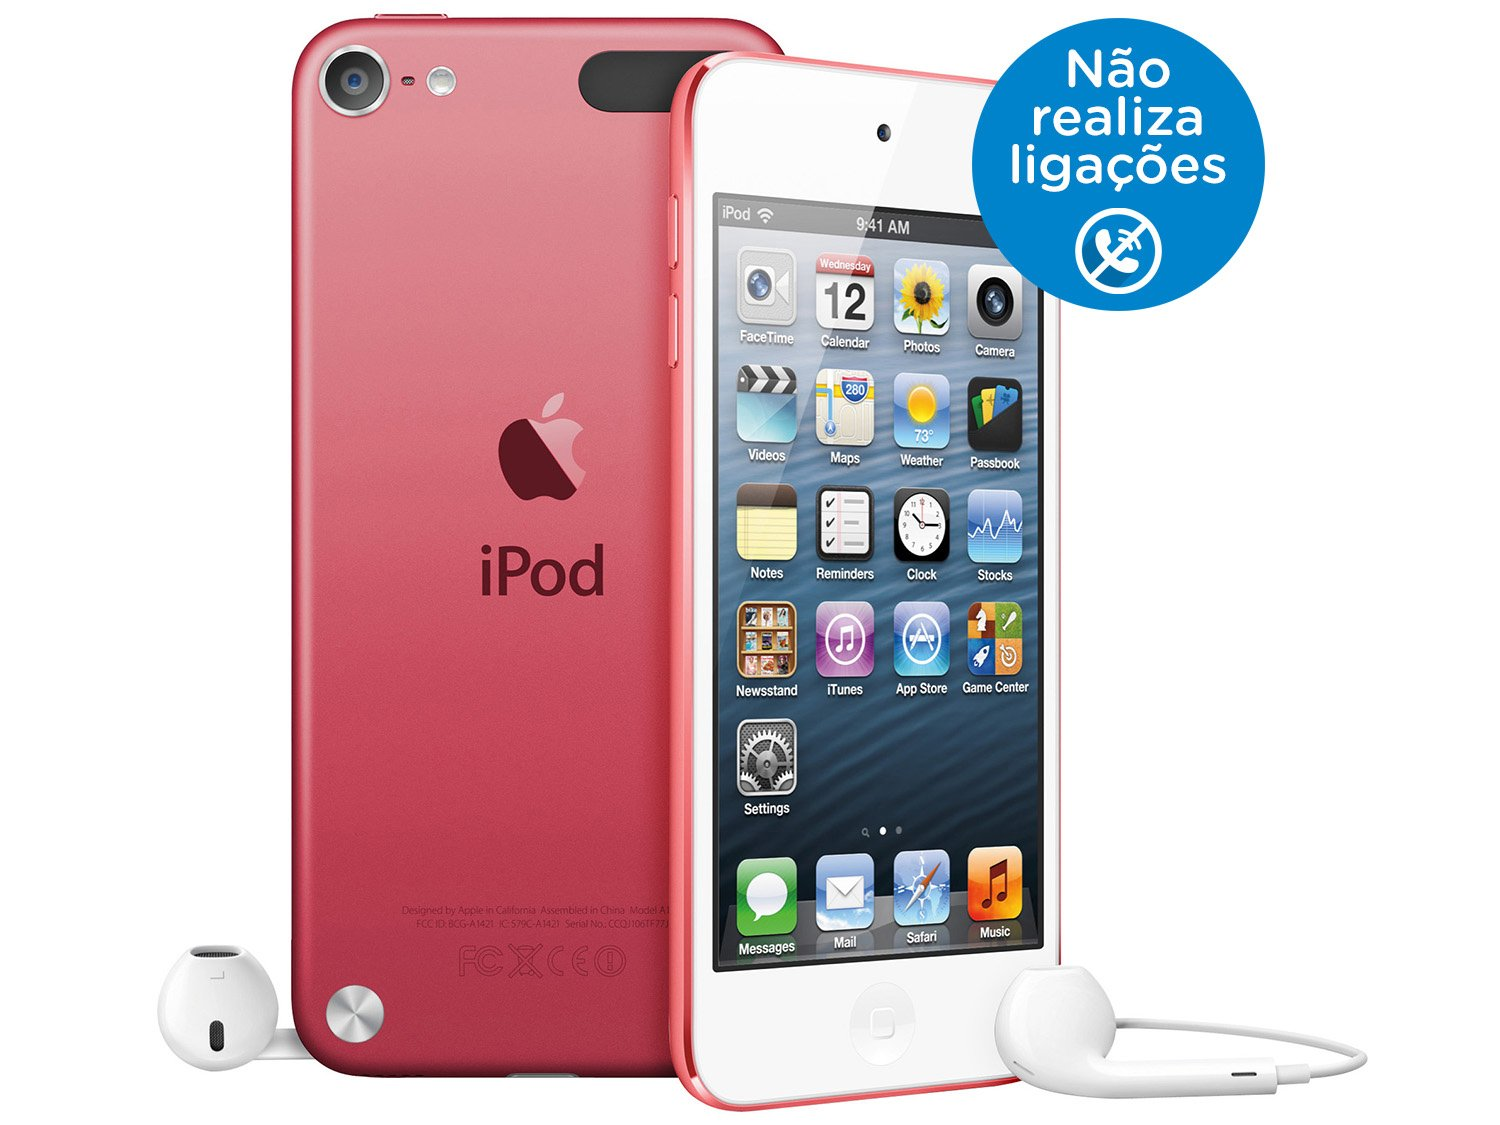 Foto 3 - iPod Touch Apple 16GB Multi-Touch Wi-Fi Bluetooth - Câmera 5MP MGFY2BZ/A Rosa